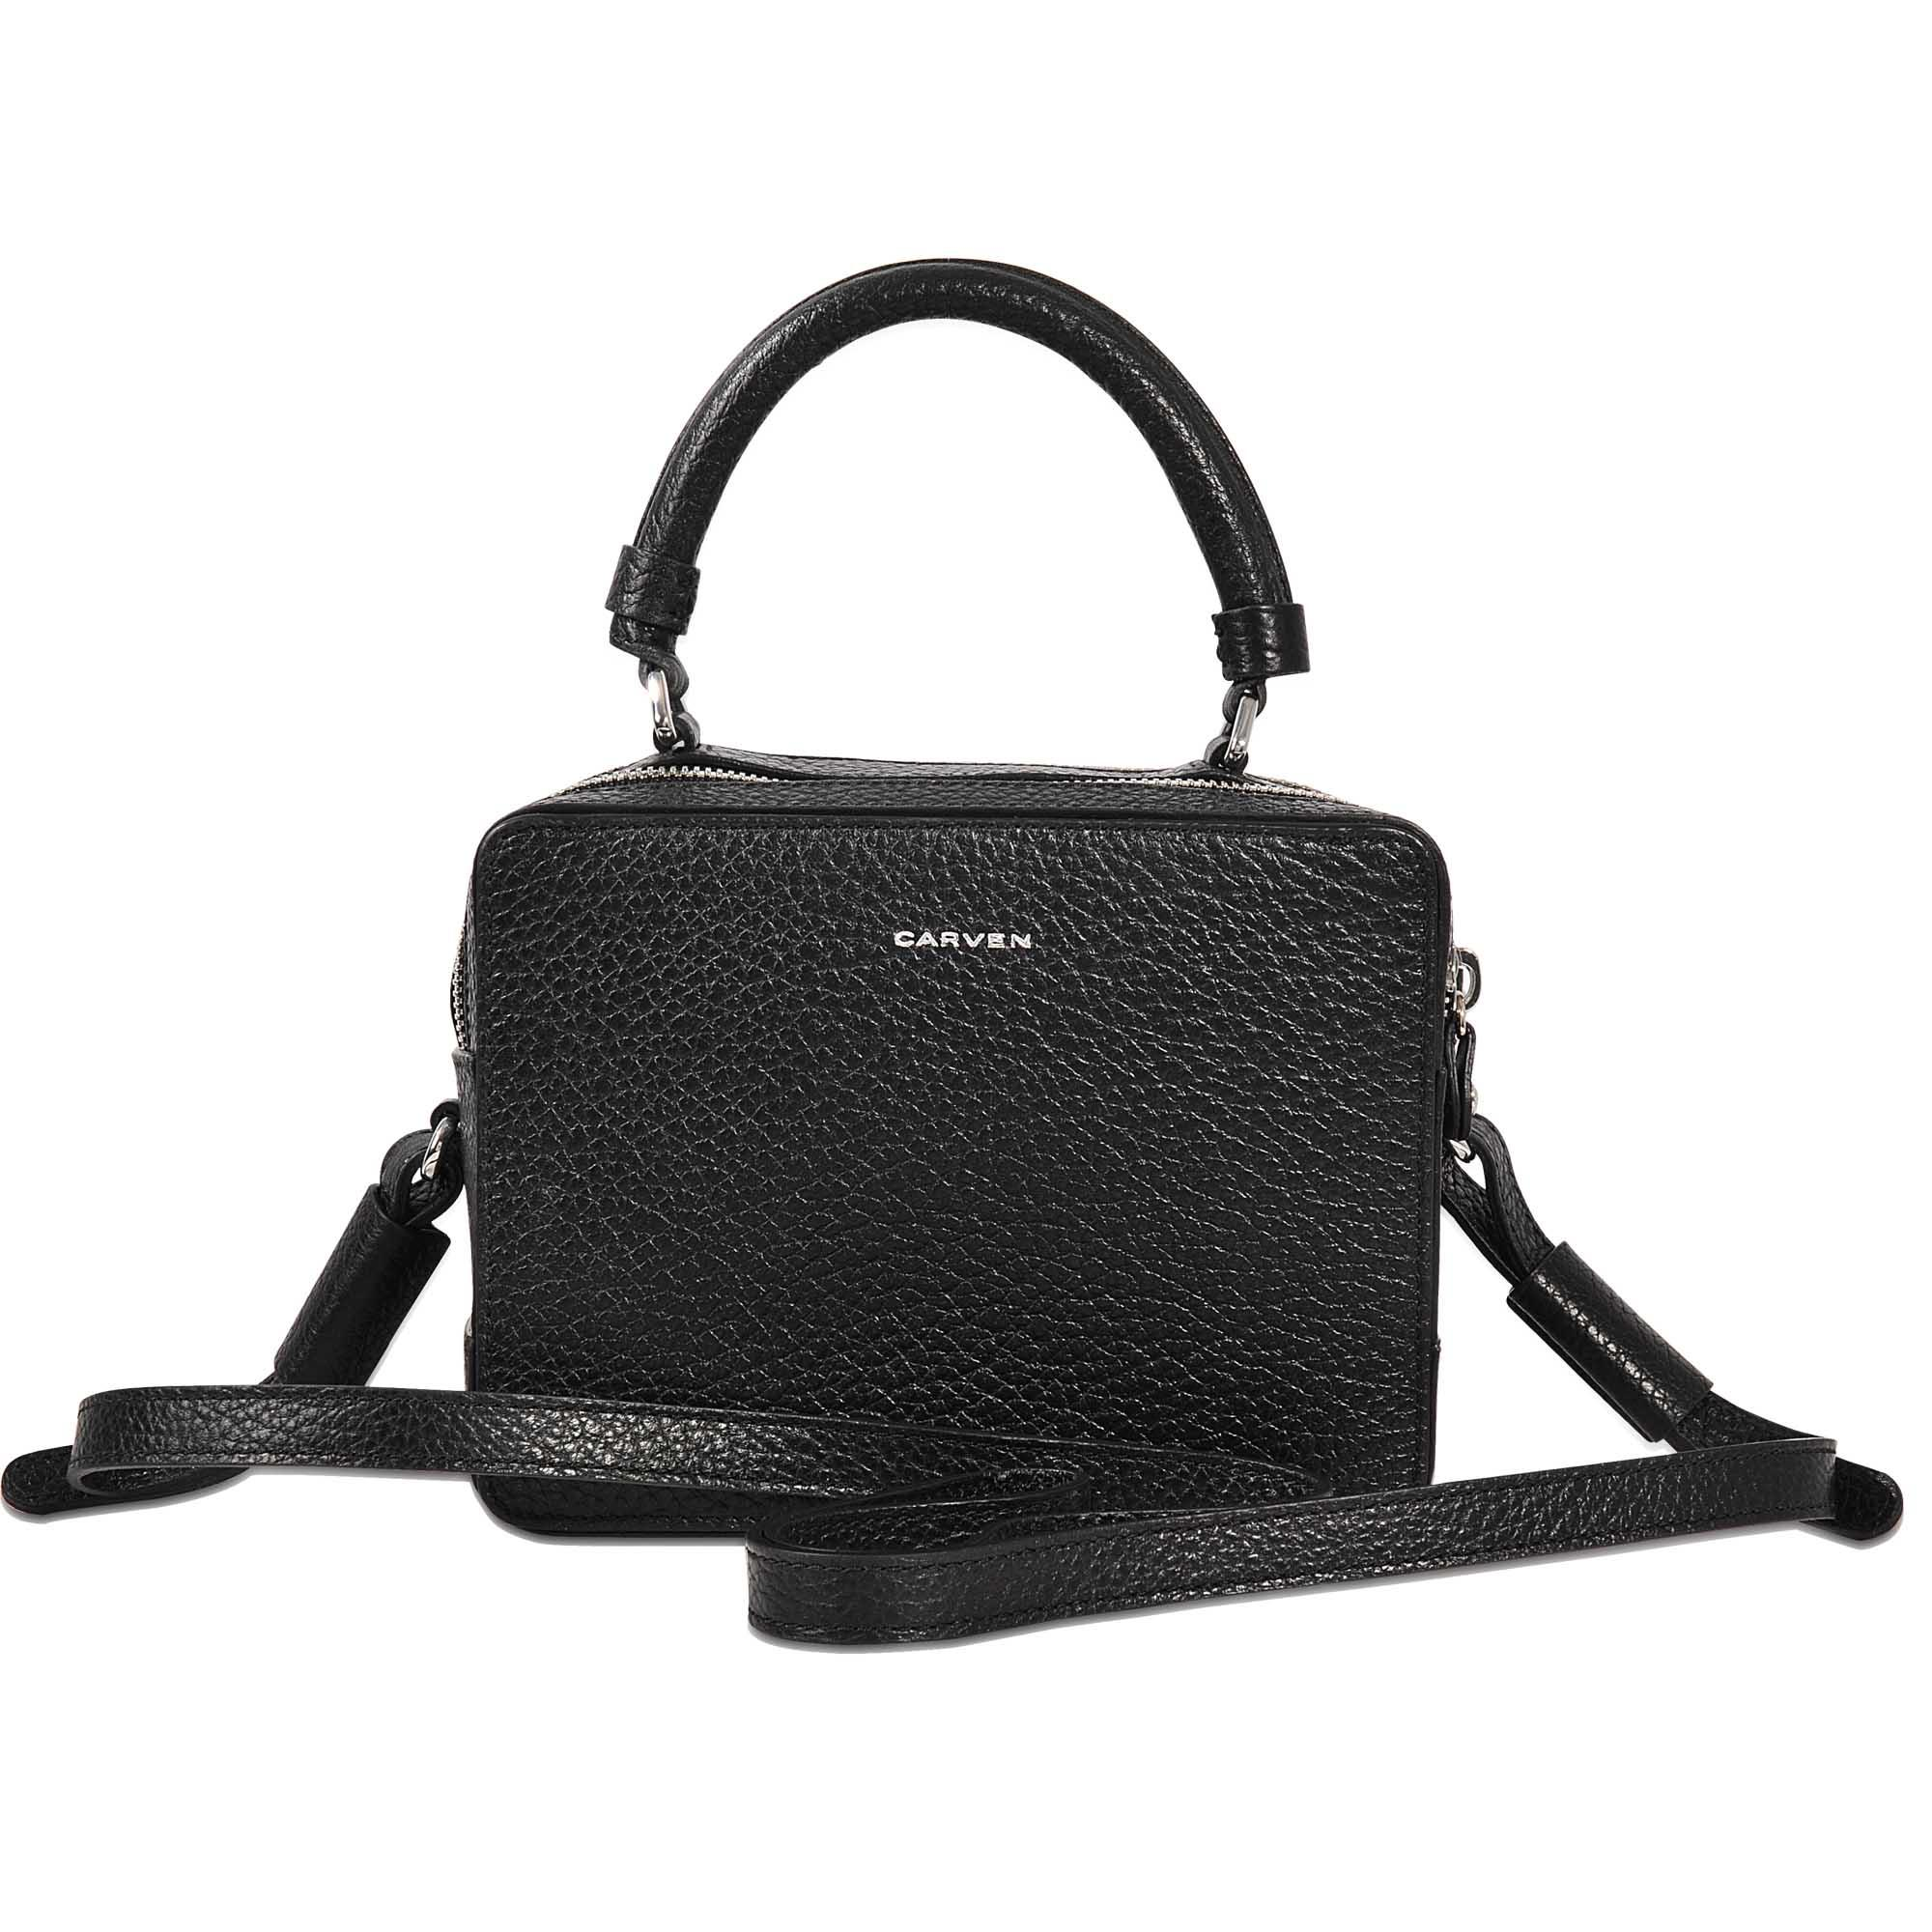 4f8fb7d224 Lyst - Carven Mahler Bag Double Carry in Black